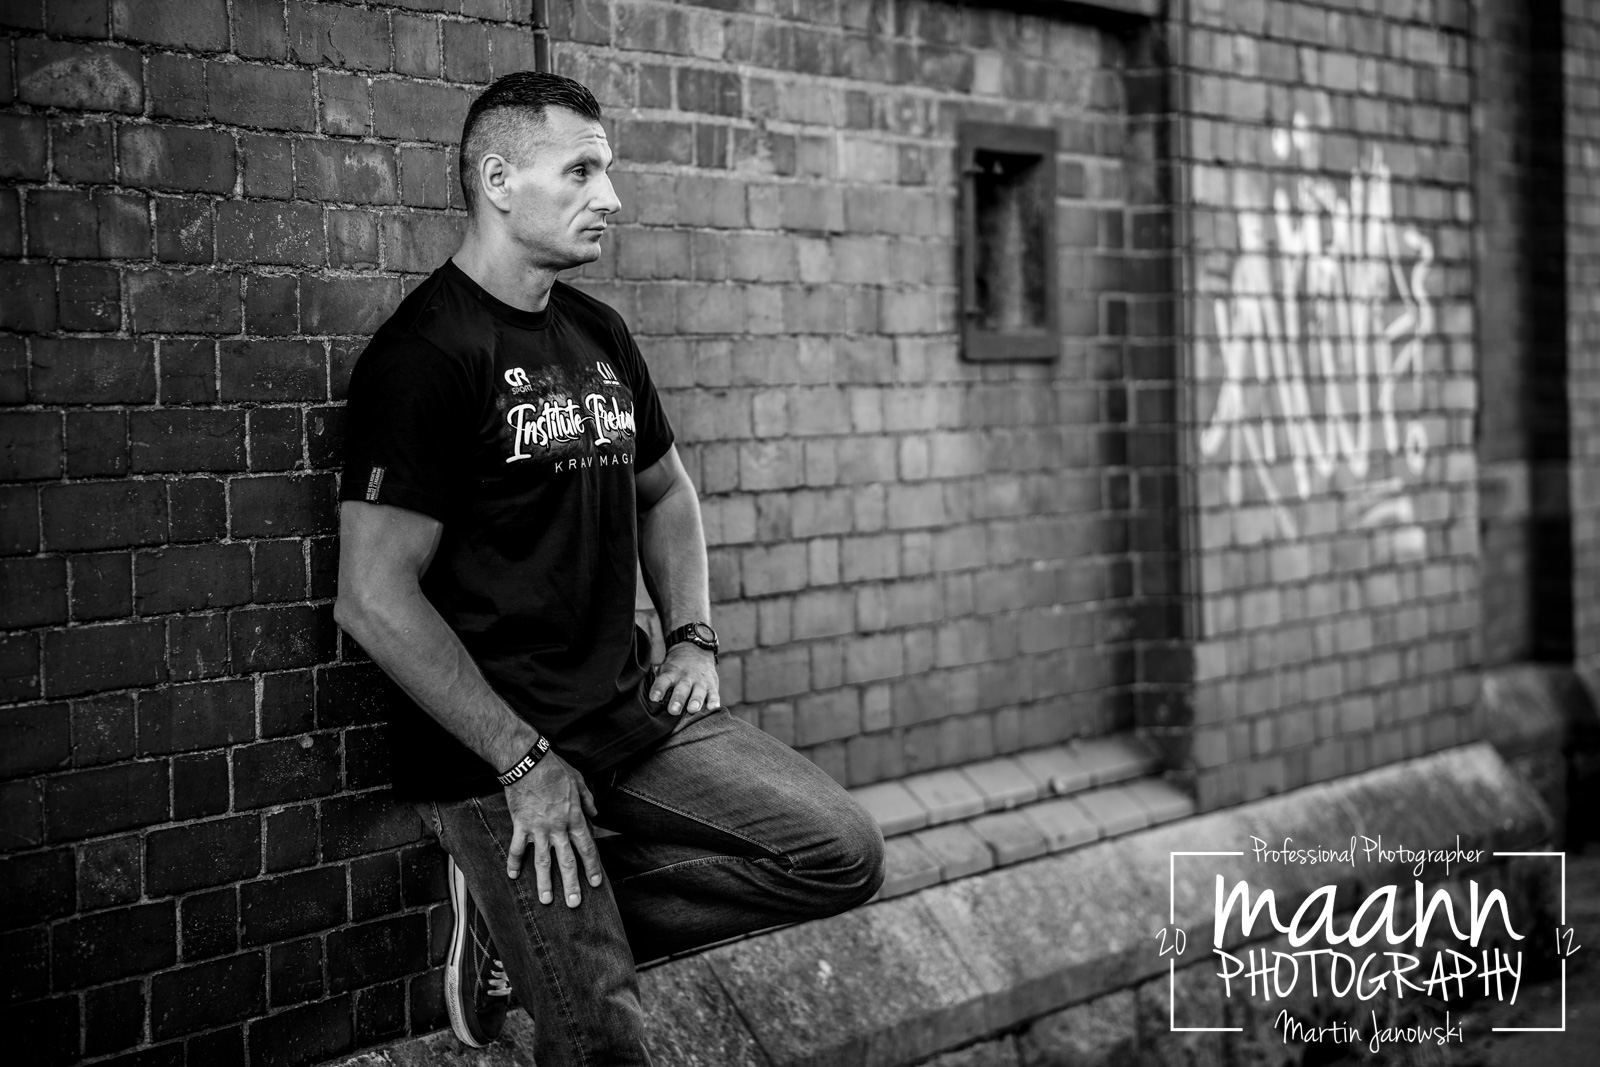 Institute Krav Maga Cork – Street Photography